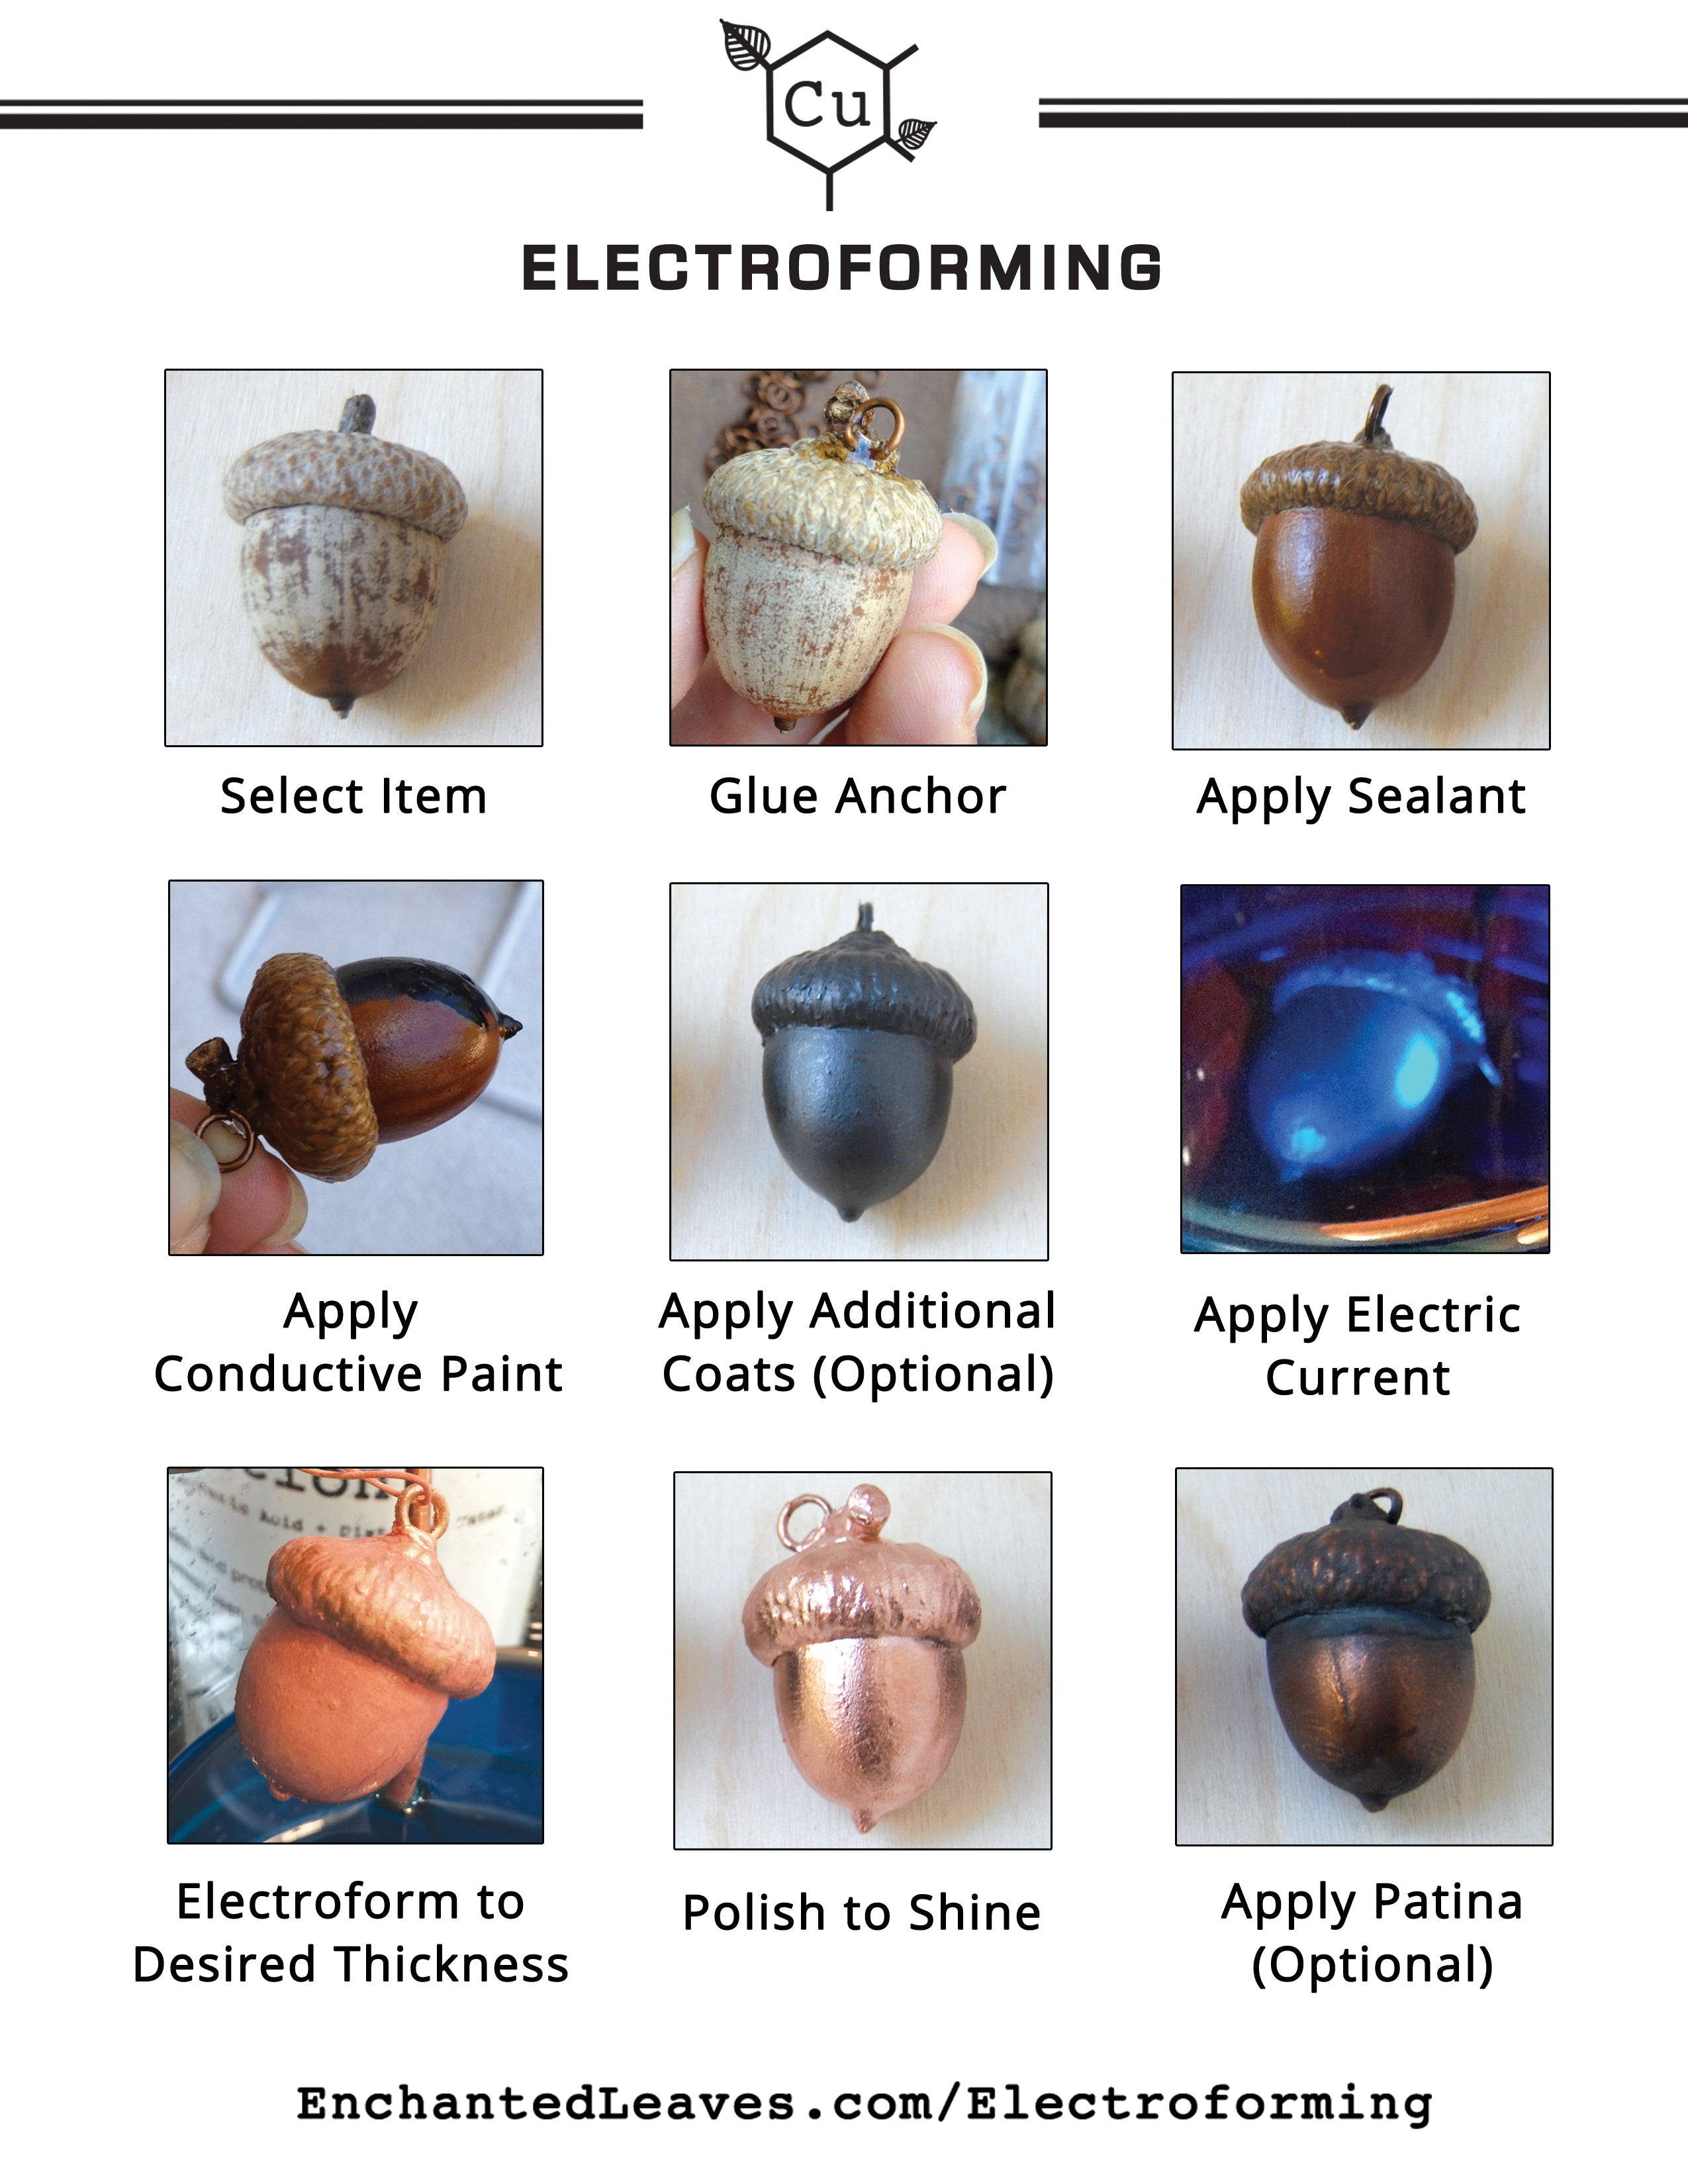 Electroforming Tutorial - Free Step by Step Guide to Making